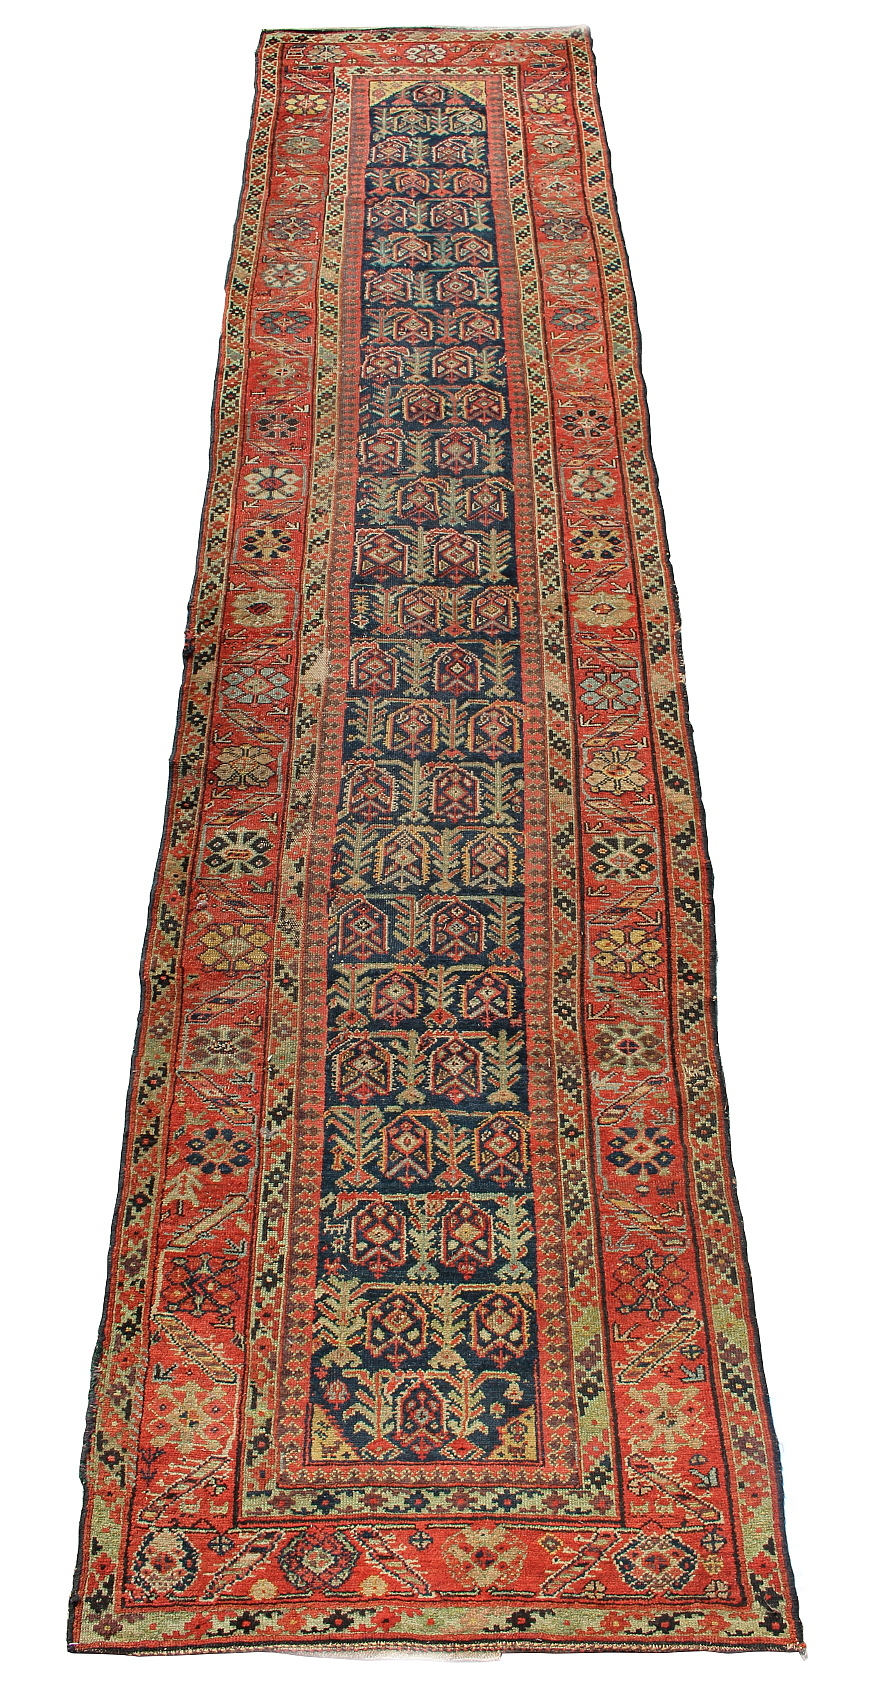 Lot 19 - Property of a lady - an antique Sarab runner, 176 by 39ins. (437 by 100cms.) (see illustration).